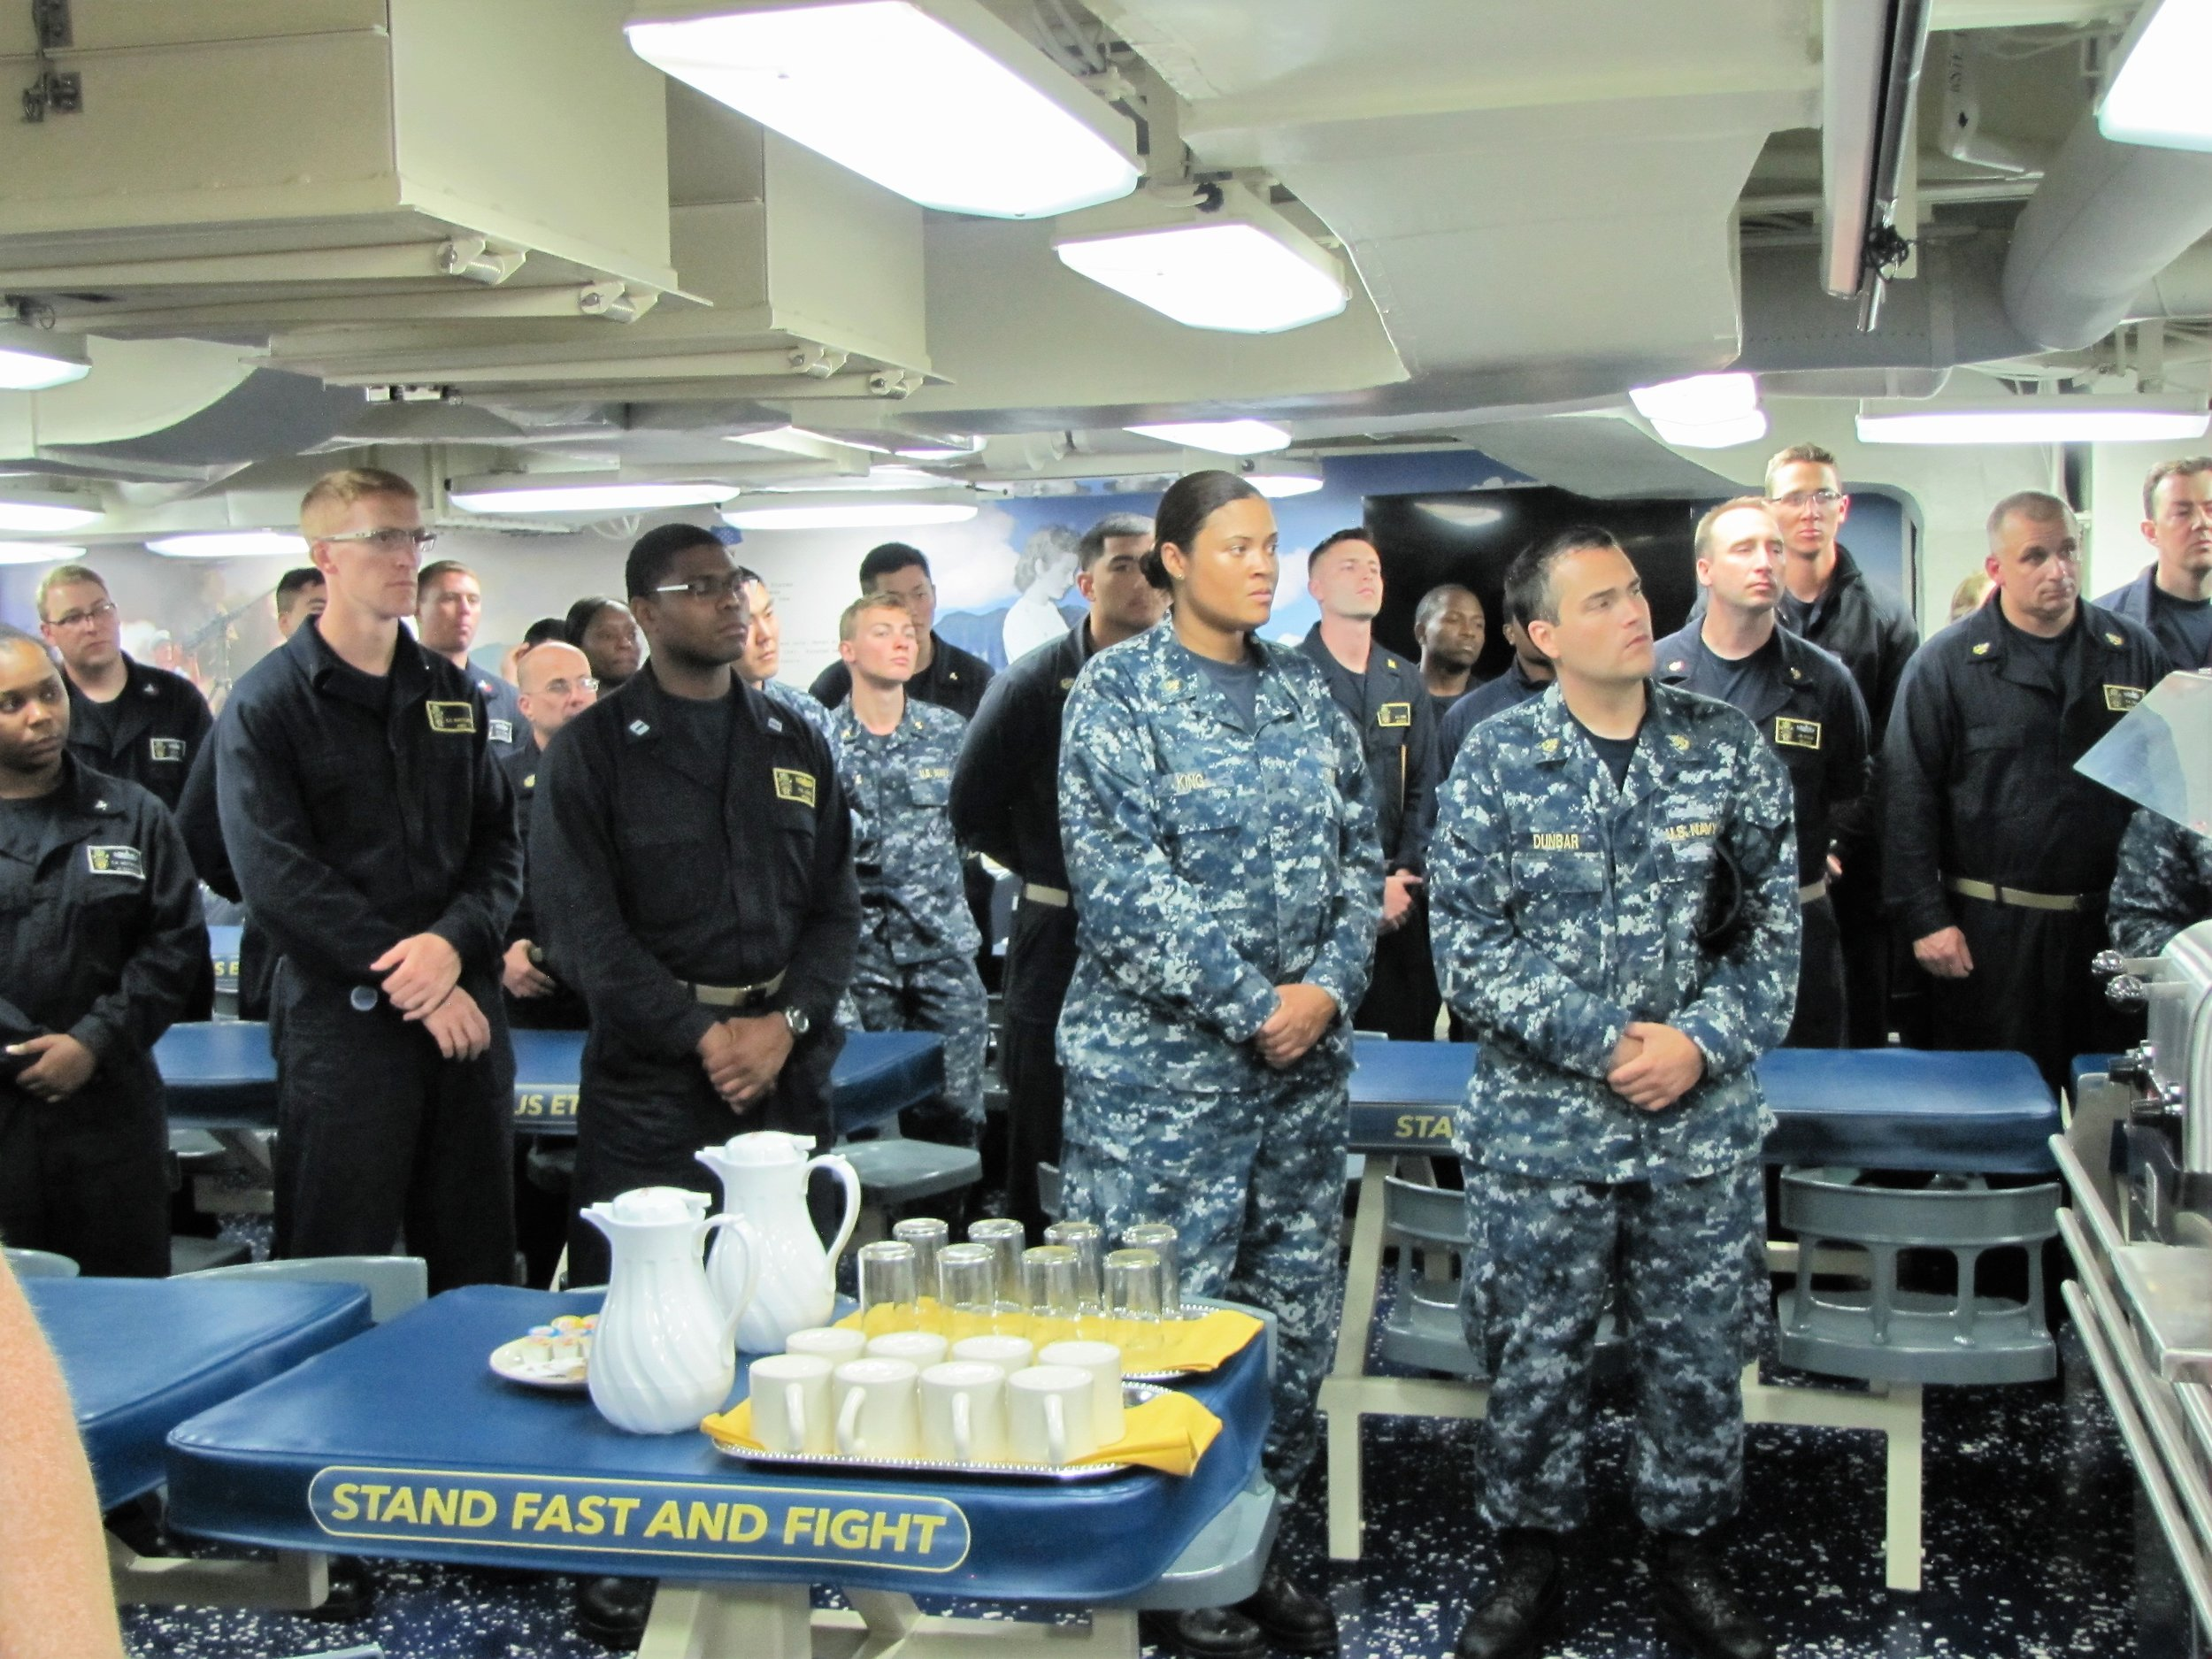 Officers and Crew of the USS John Finn assembled for the unveiling ceremony